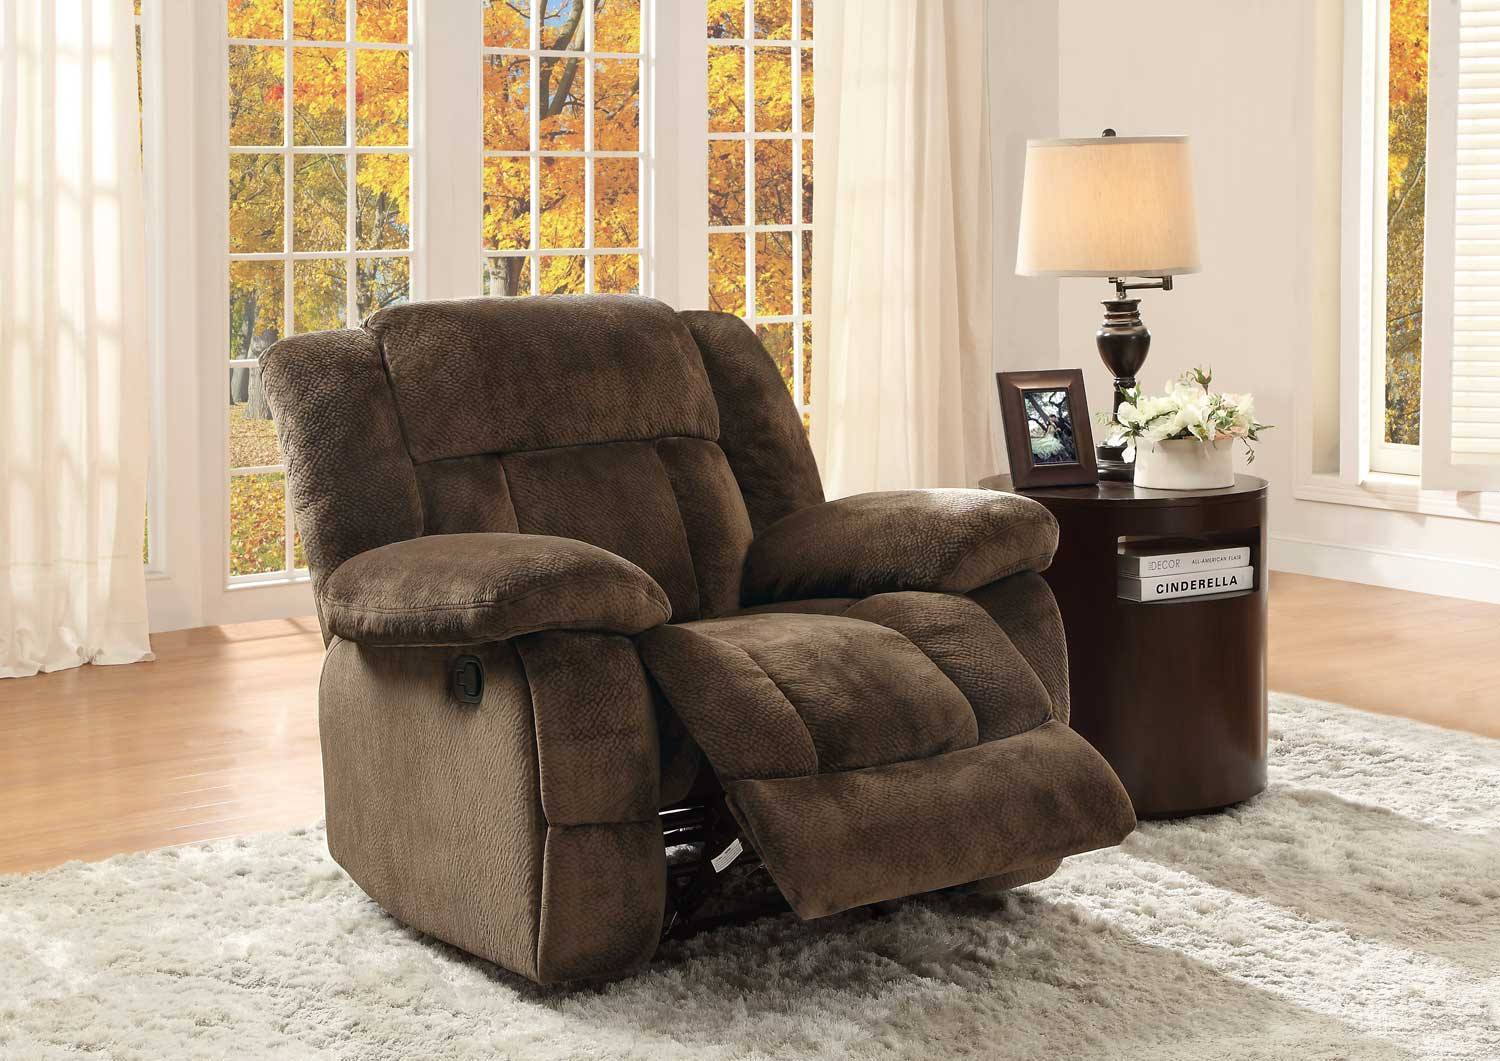 homelegance laurelton glider reclining chair chocolate textured plush microfiber